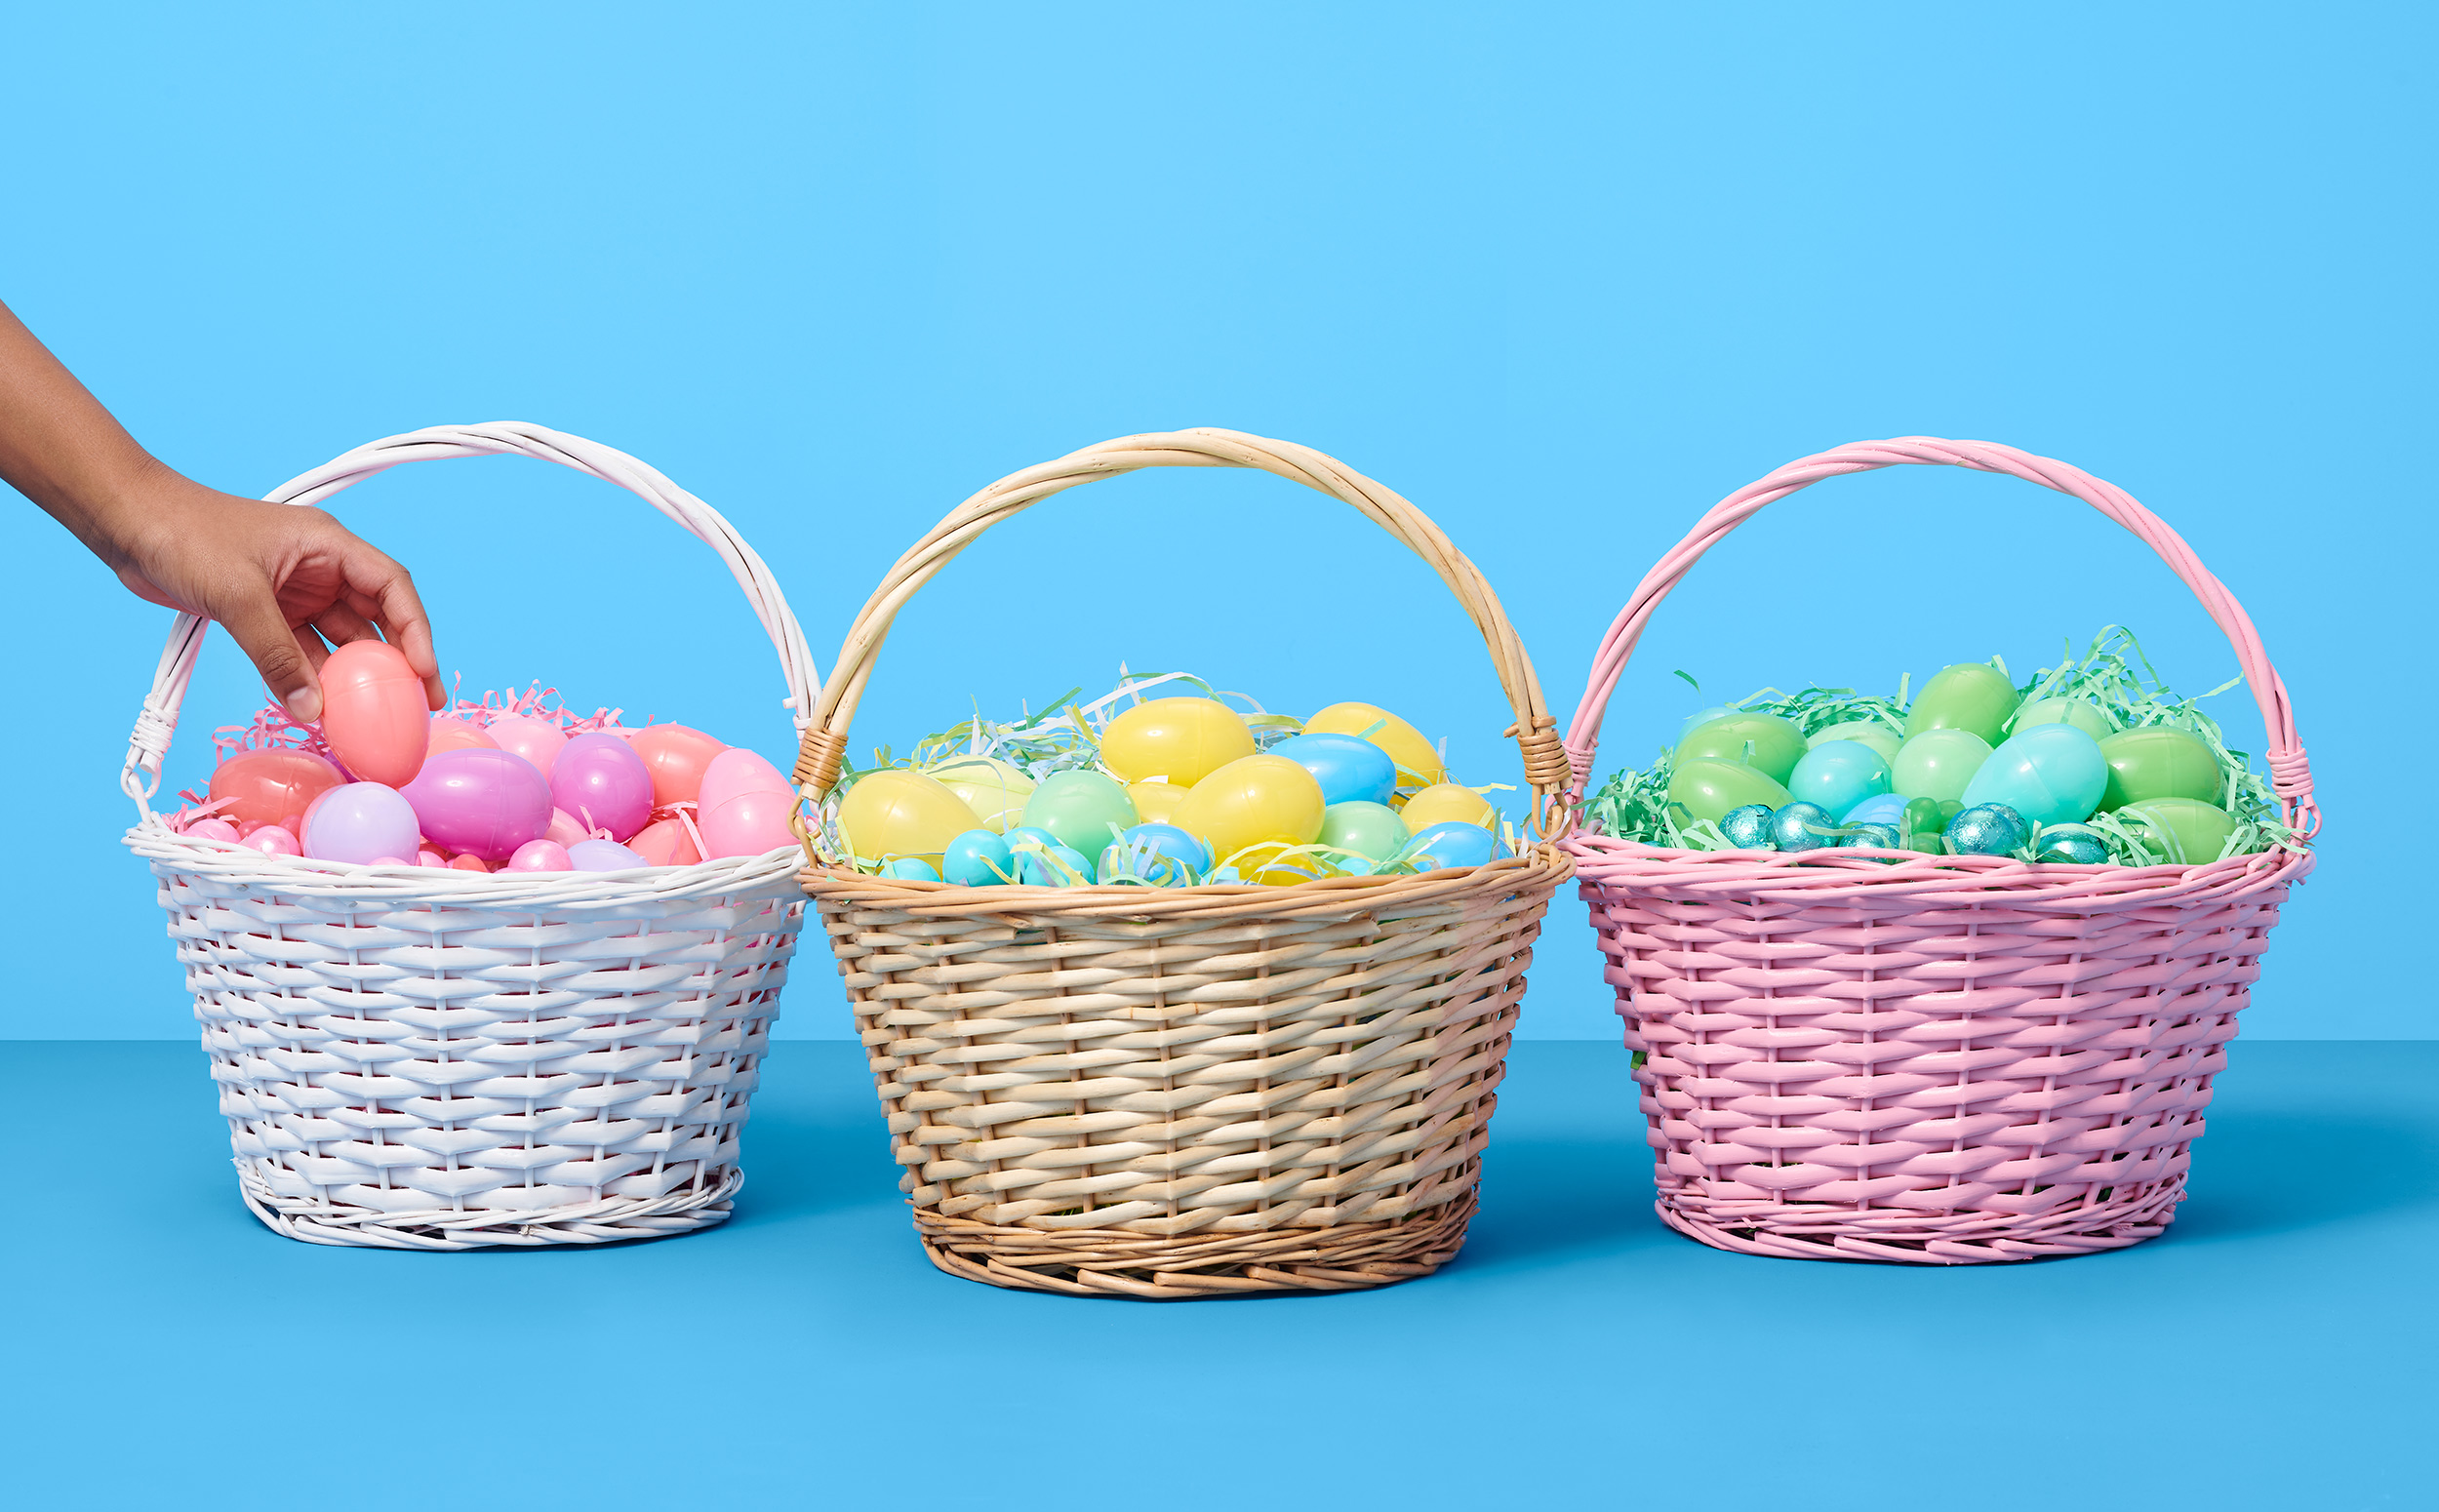 C-001298-01-008_2019_11_25_KNOCK_Easter_CSE0892_Baskets_V1